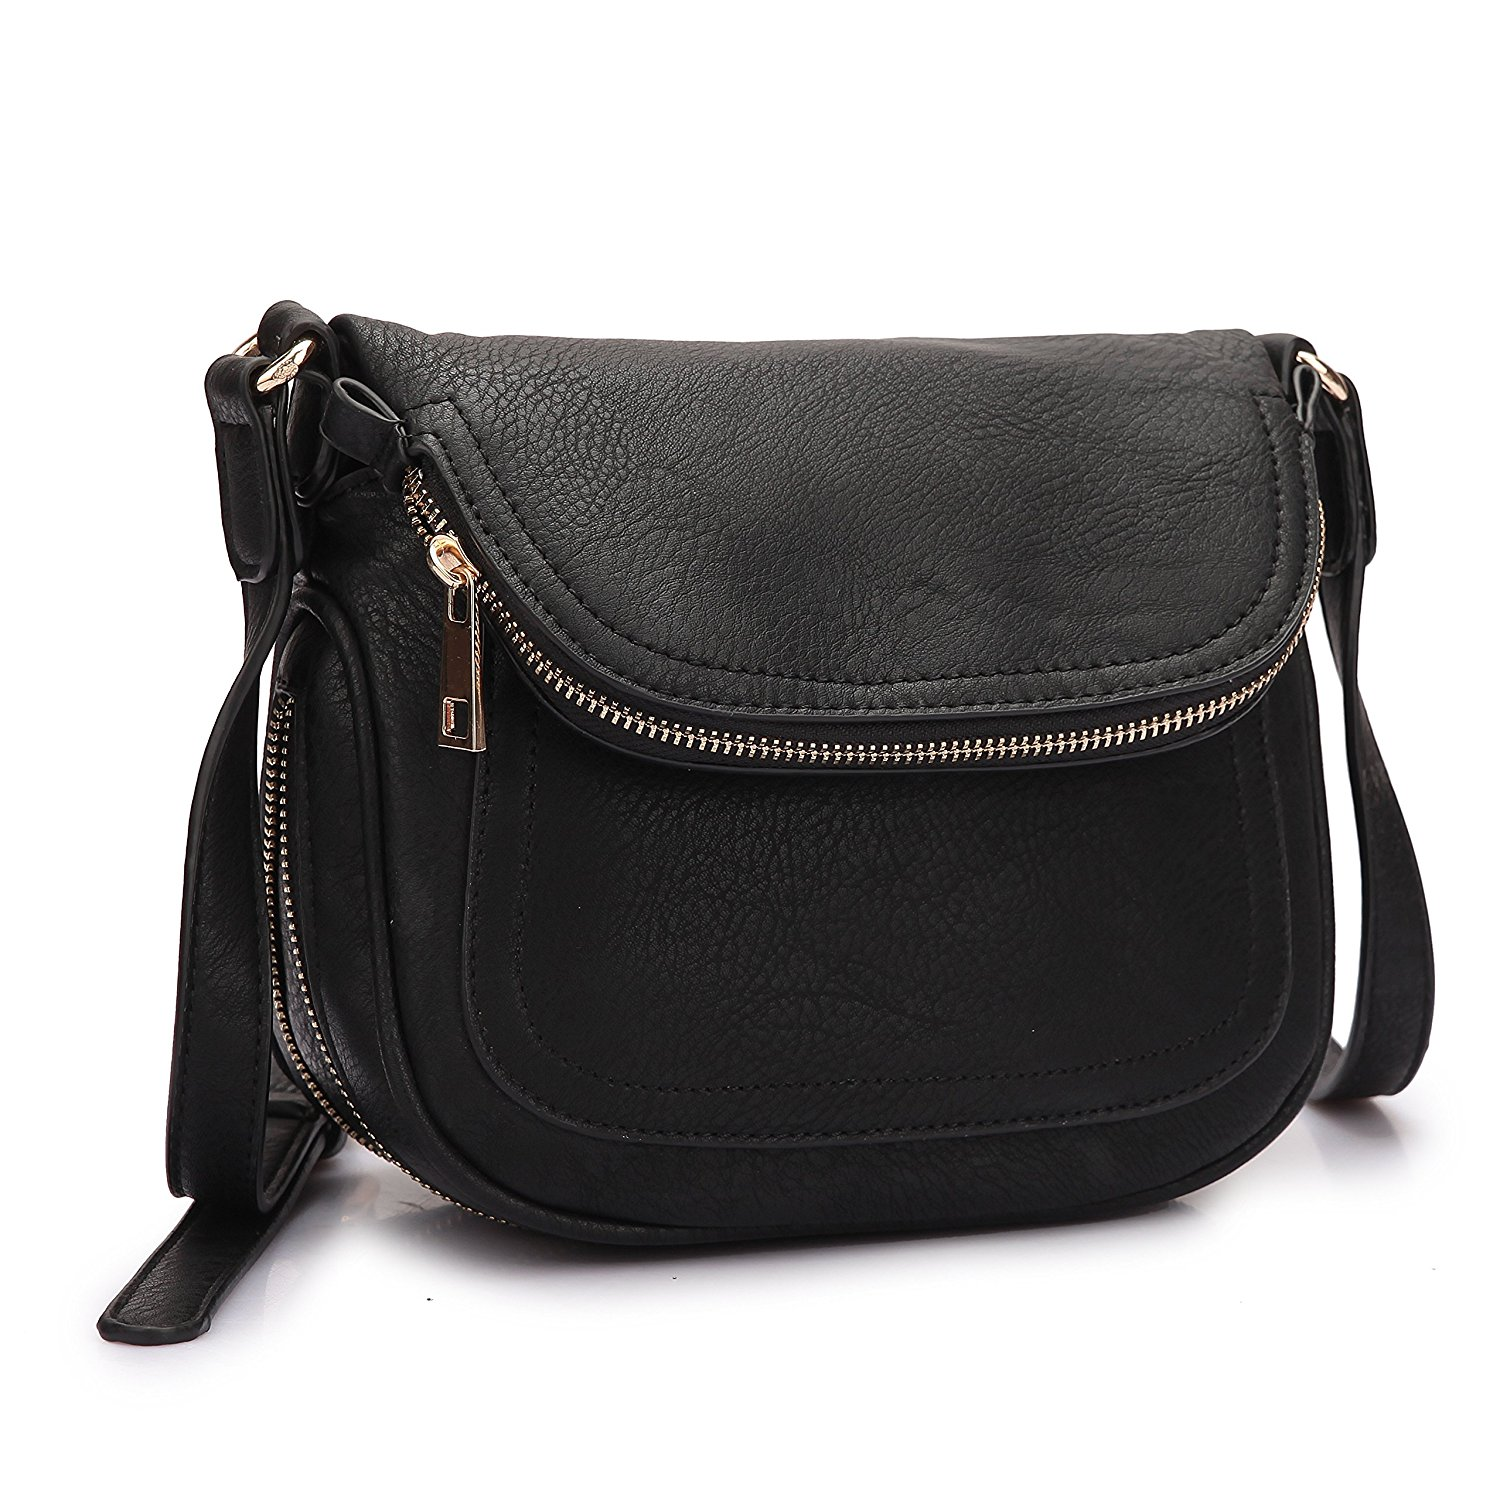 MMK collection Crossbody Bag ~Messenger Purse(2830)~ Crossbody Bag for Women~multiple pocket Messenger handbag.